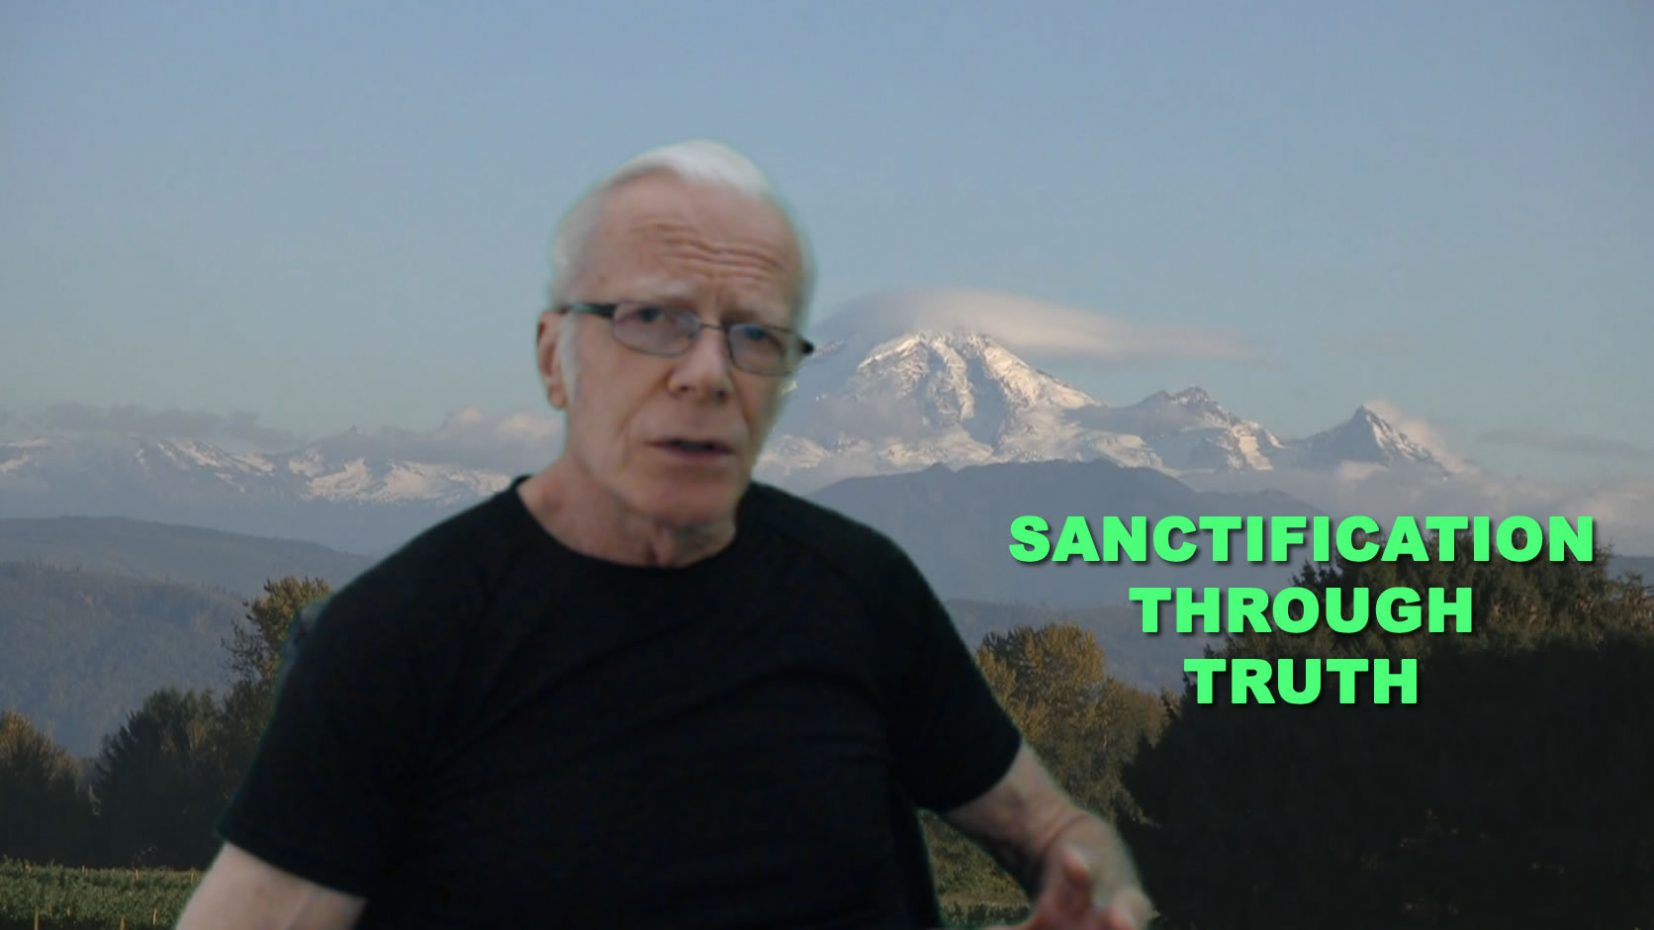 Sanctification through Truth